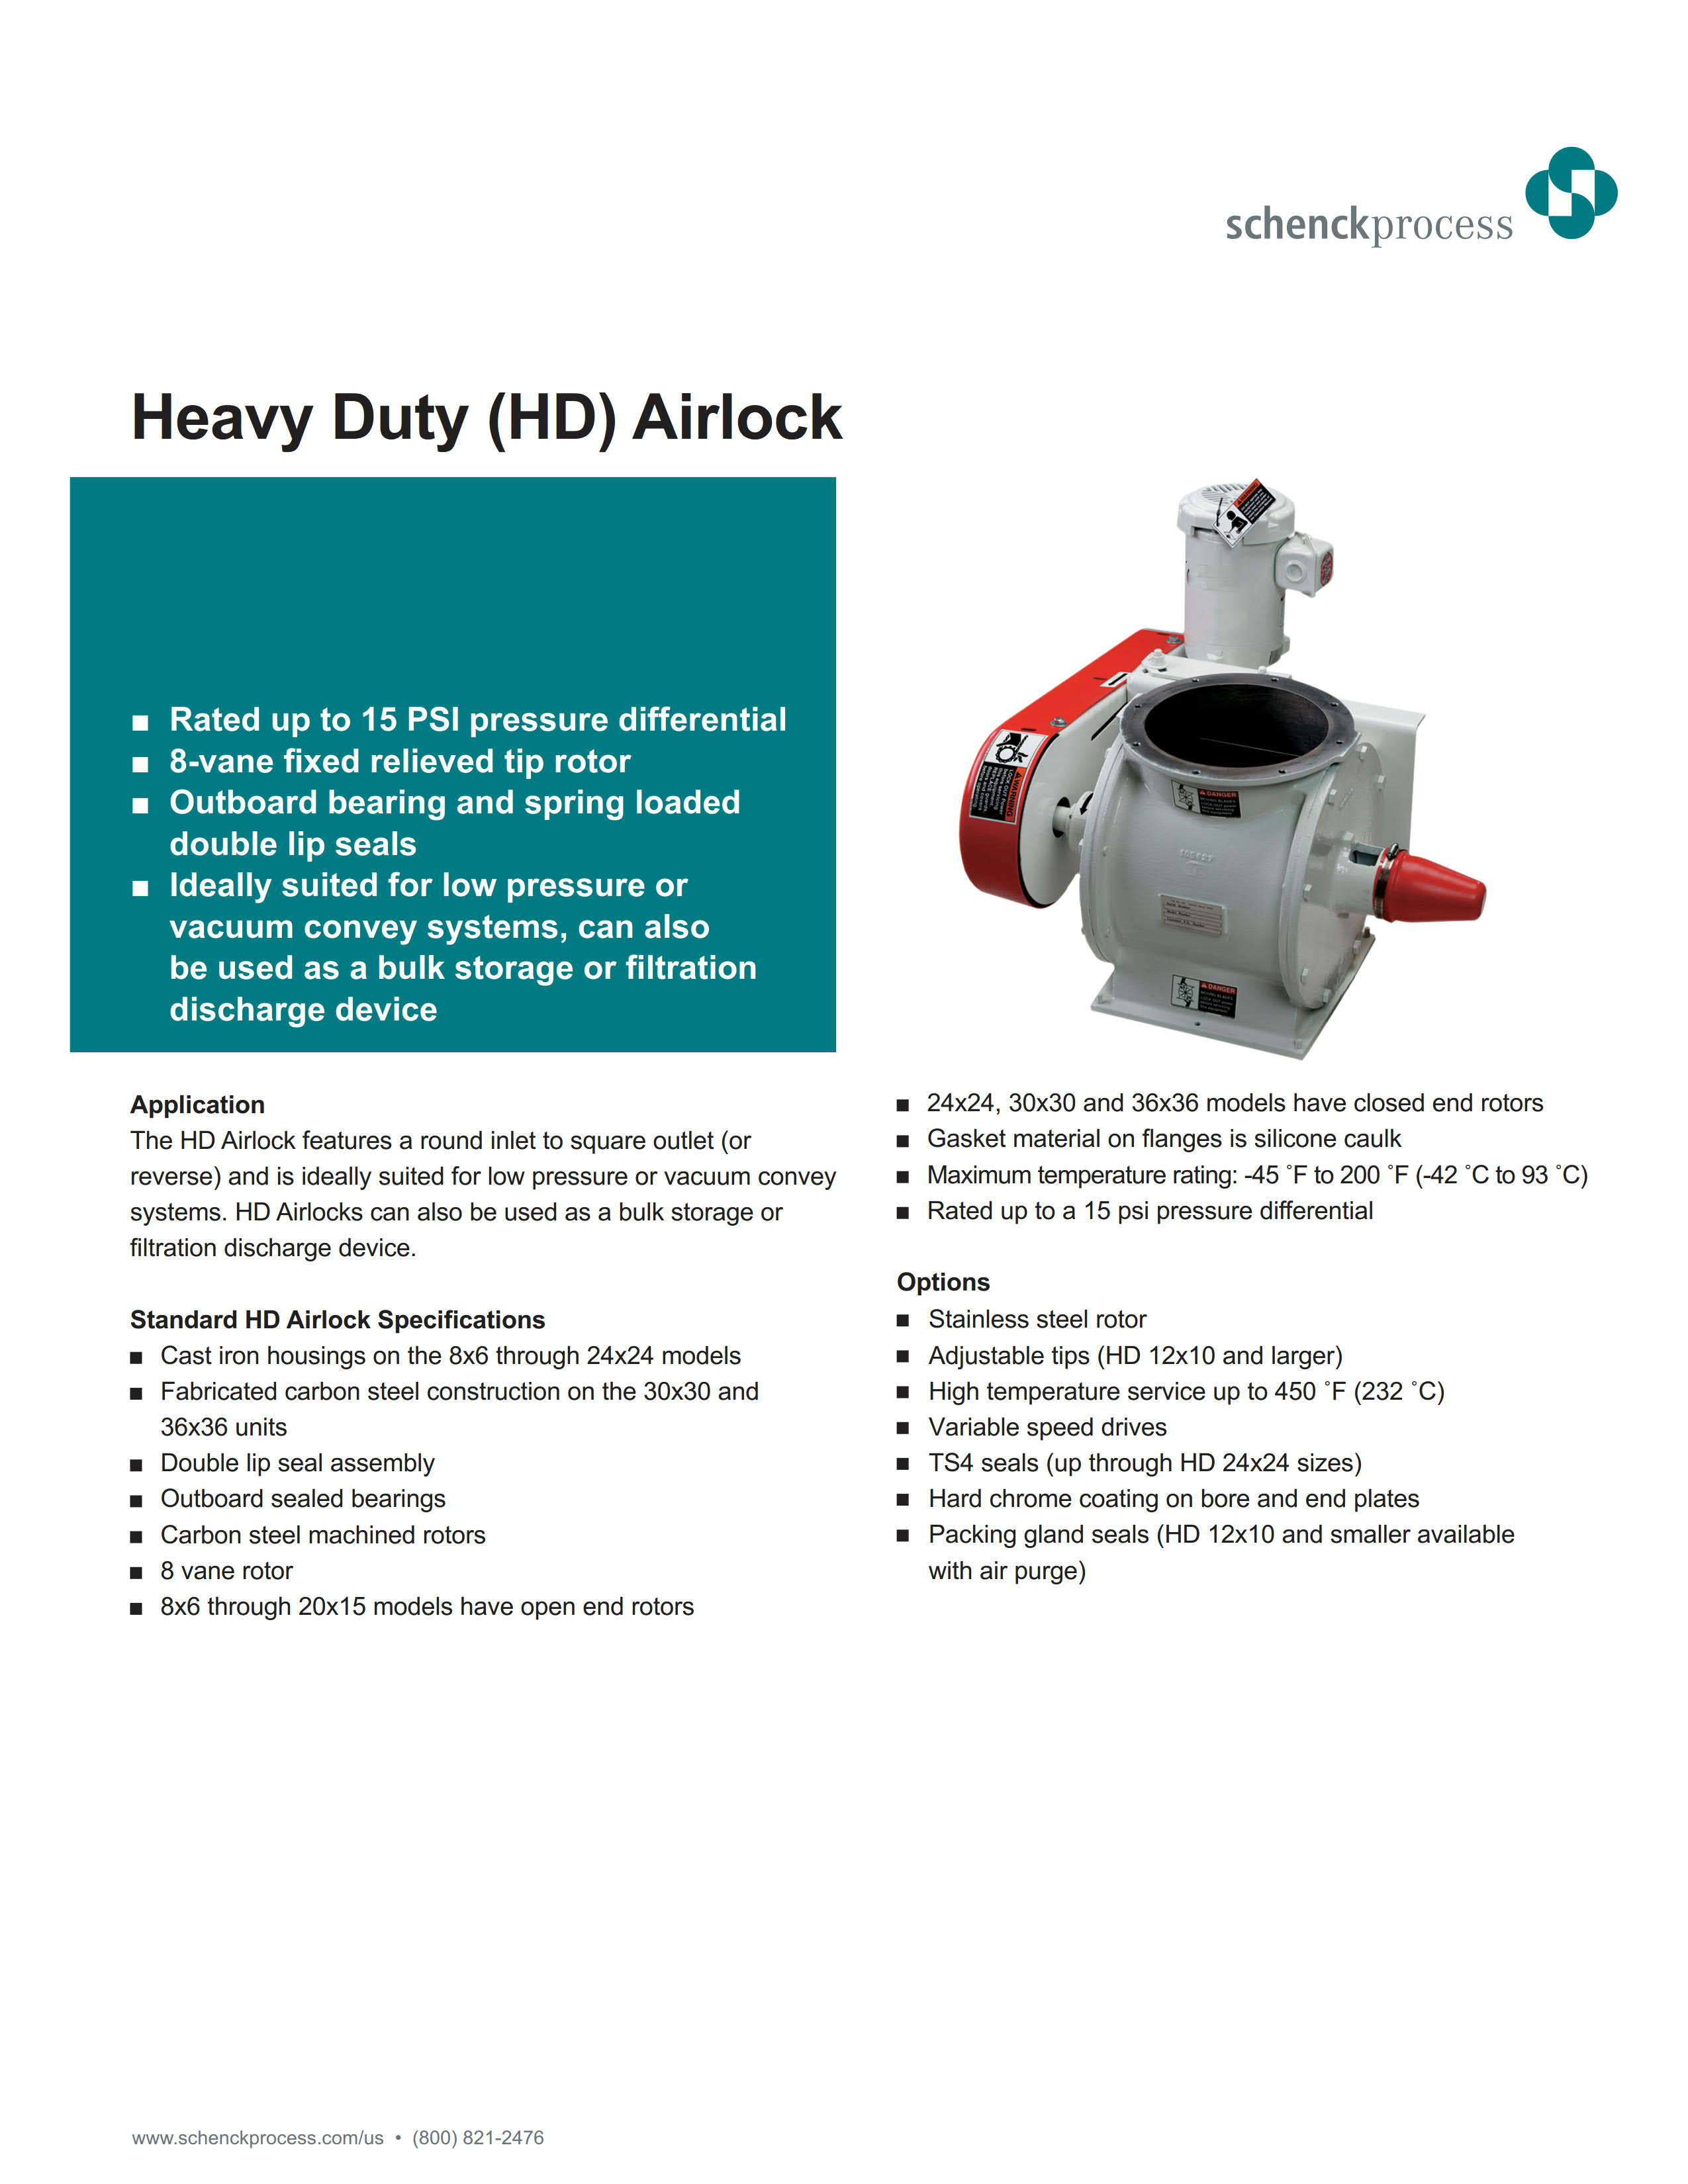 Heavy Duty (HD) Airlock